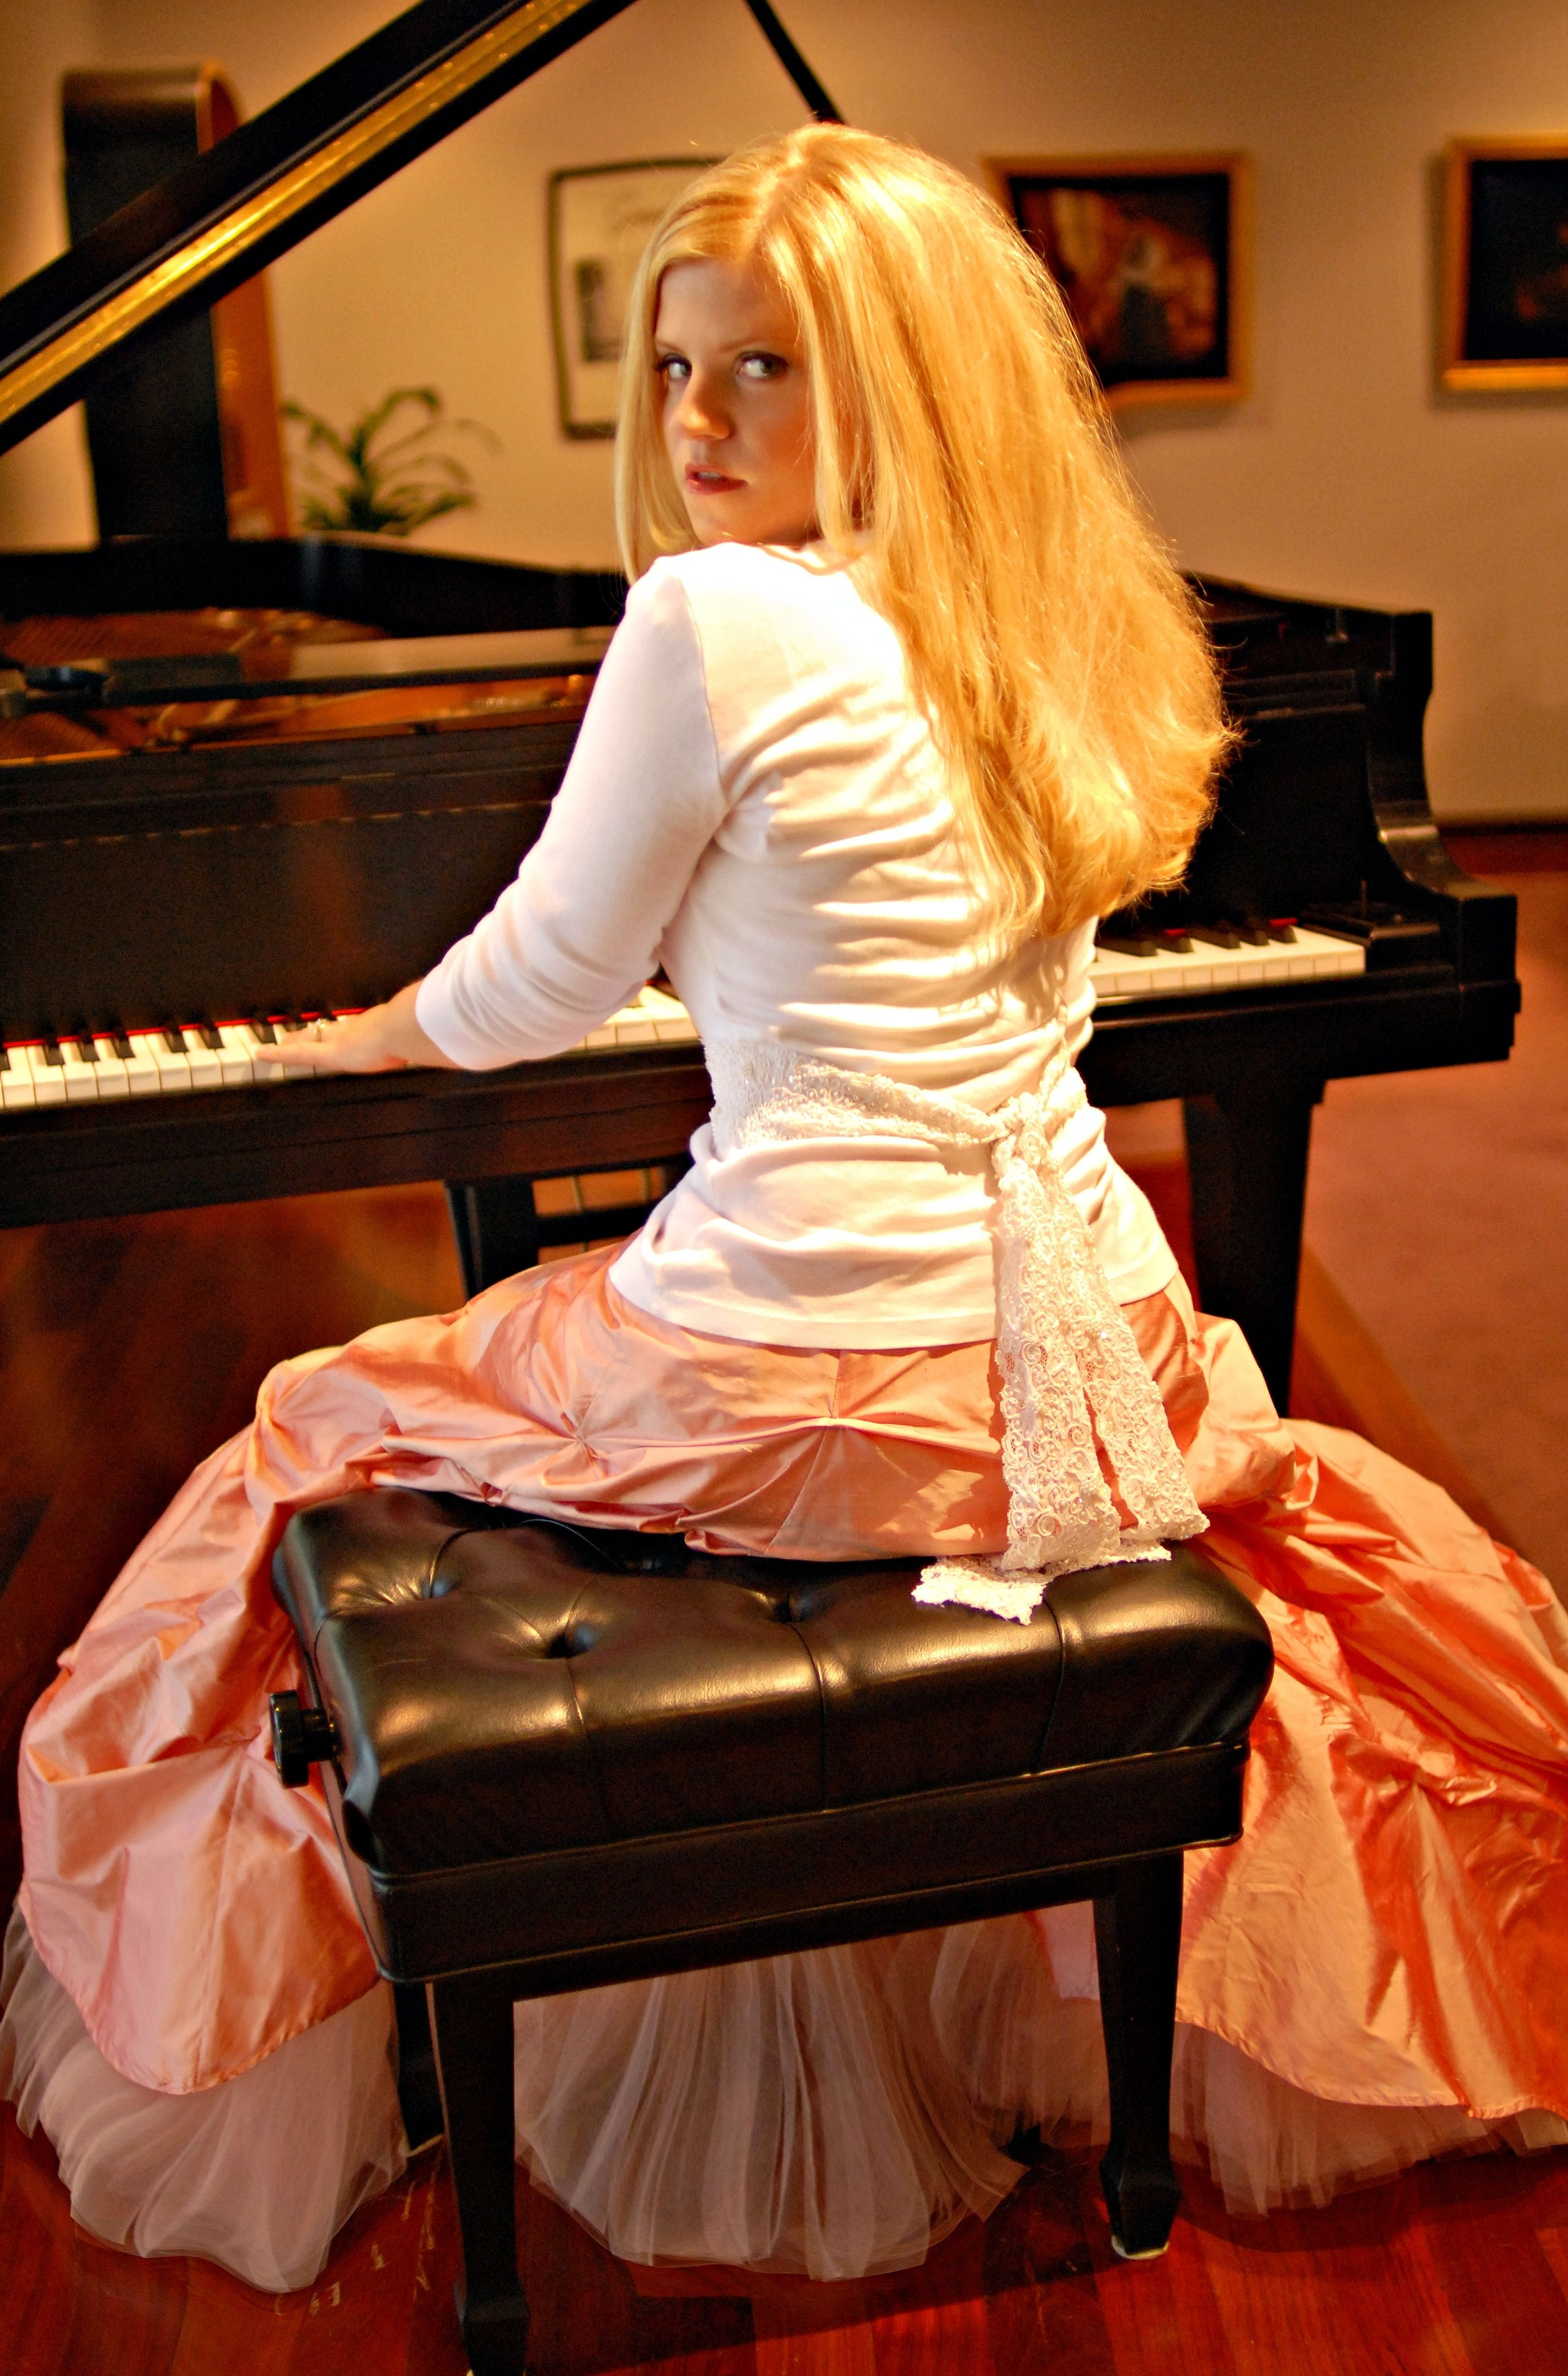 One of my album photo shoots - me at a beautiful Steinway